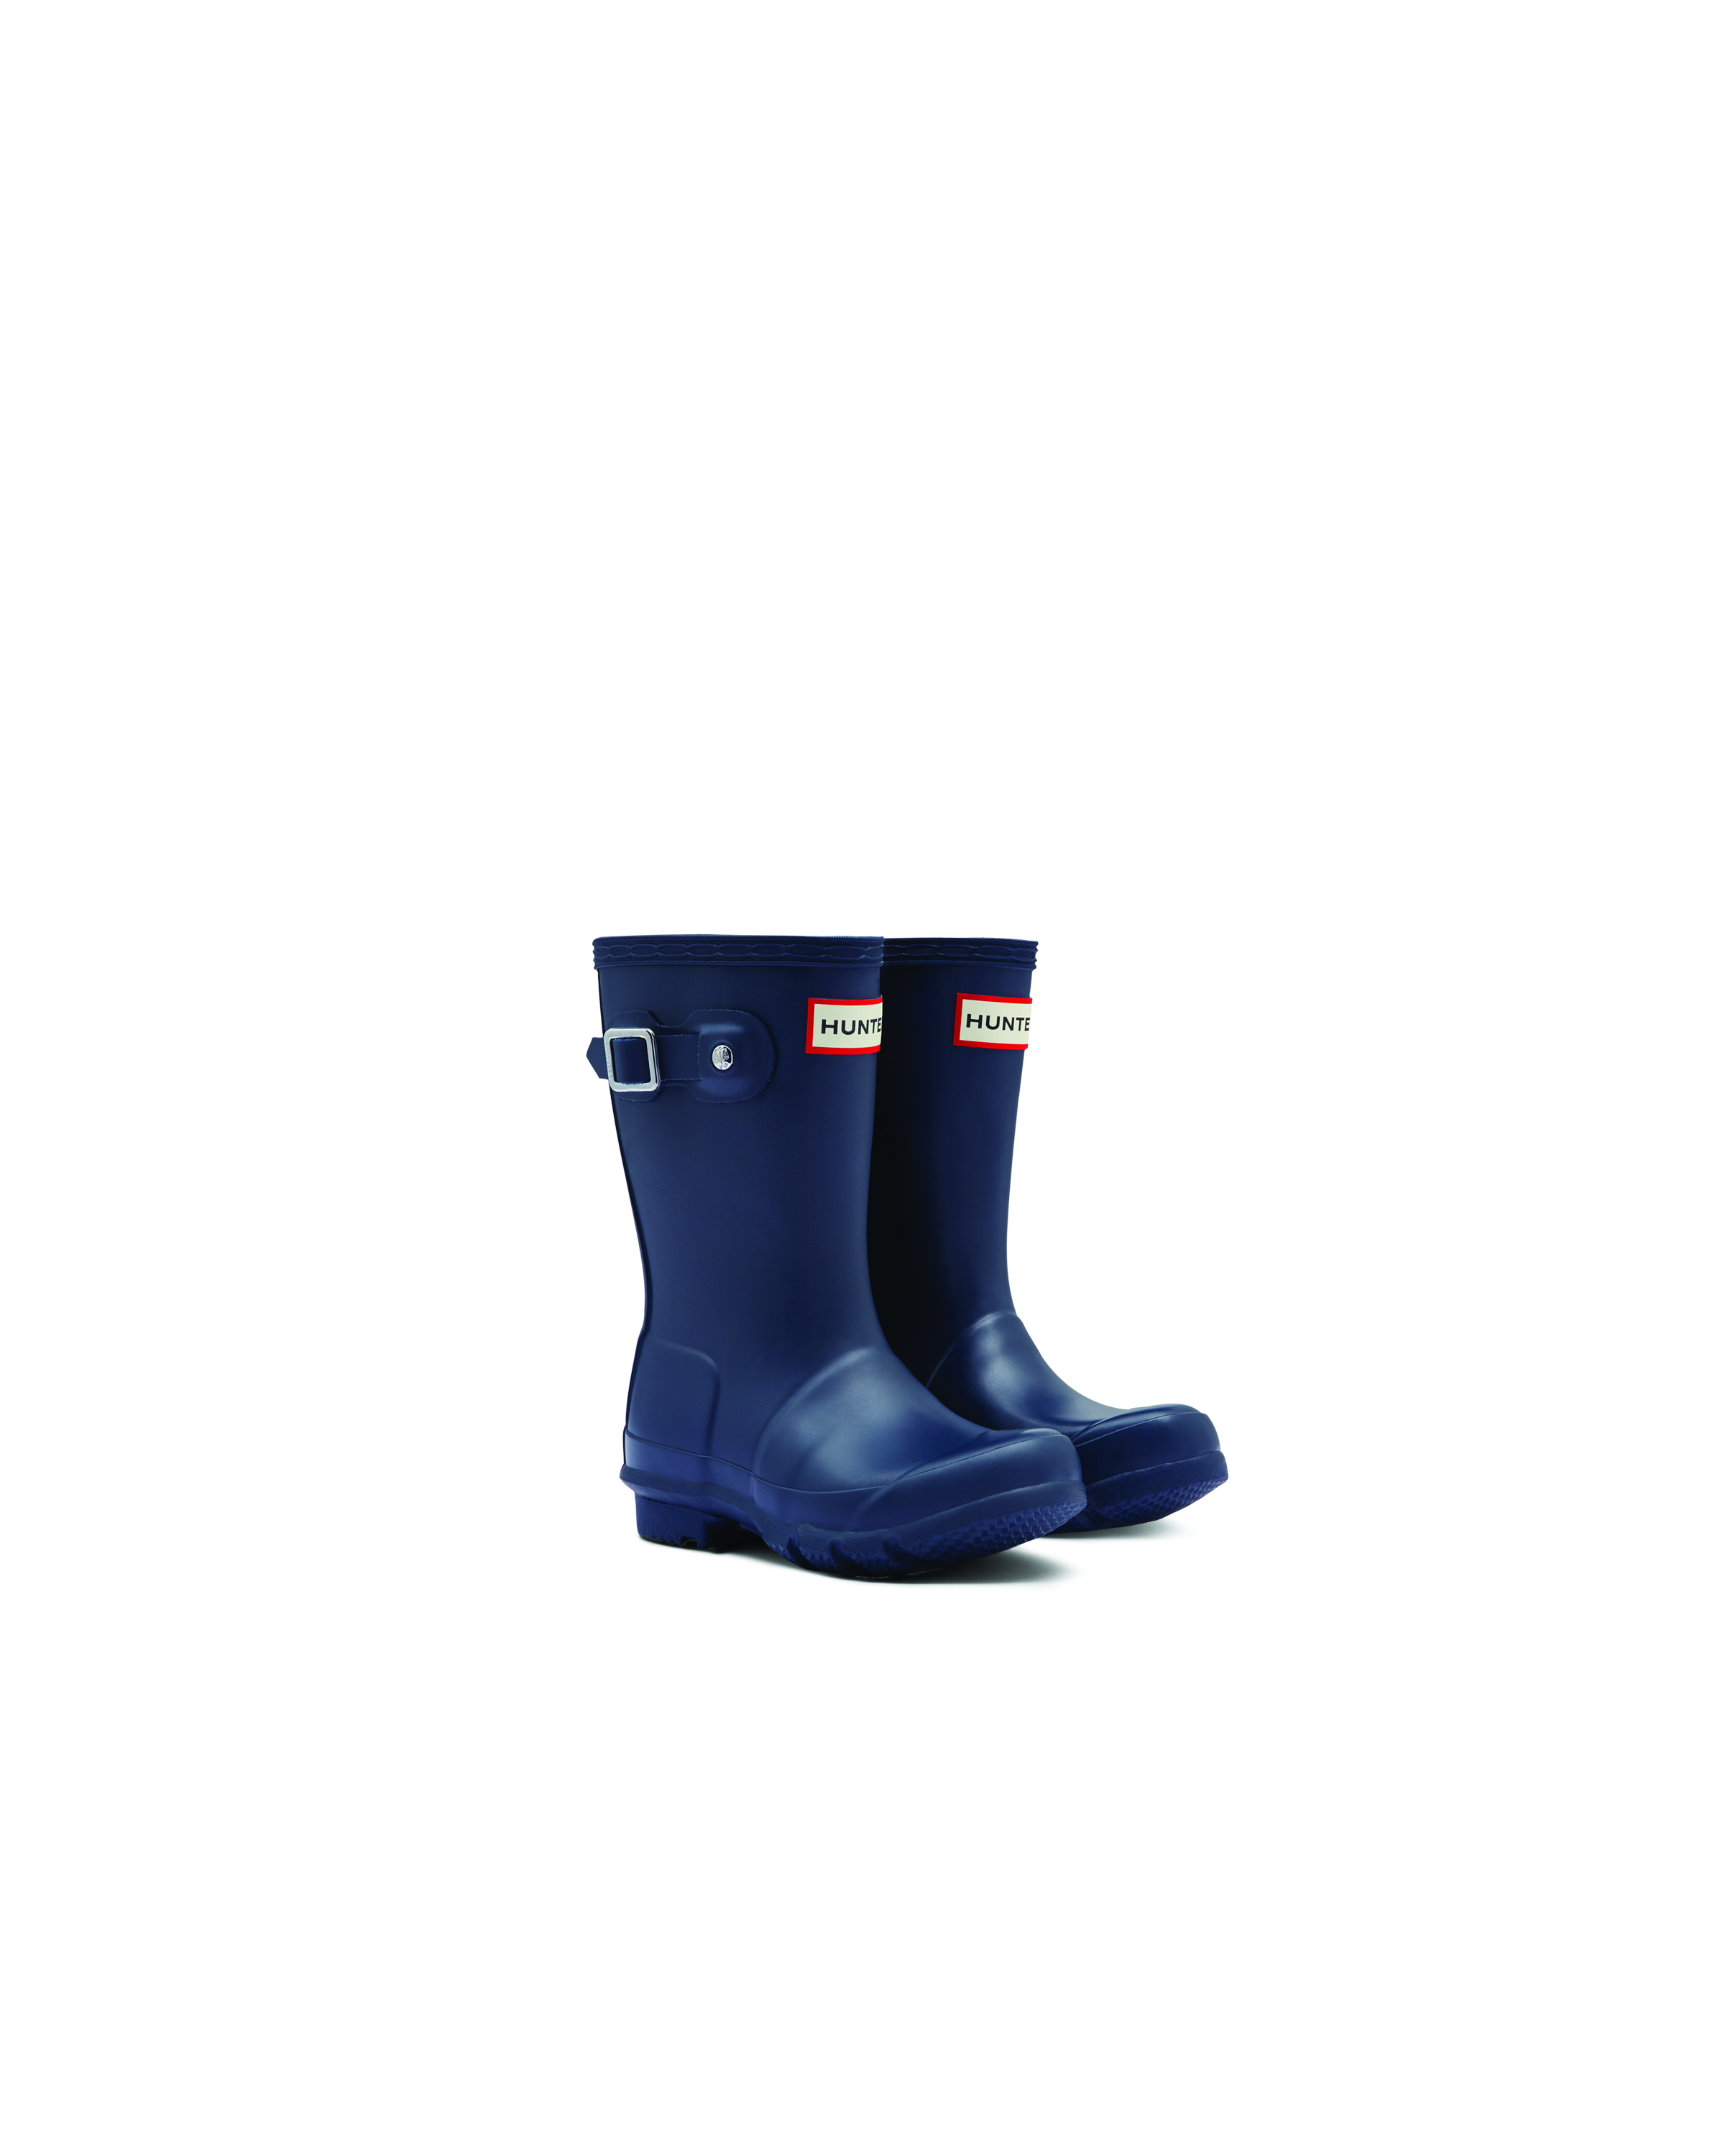 9838eb3ab00 Hunter - Kids First Classic Navy - Southern Empires - Agency & Shop ...